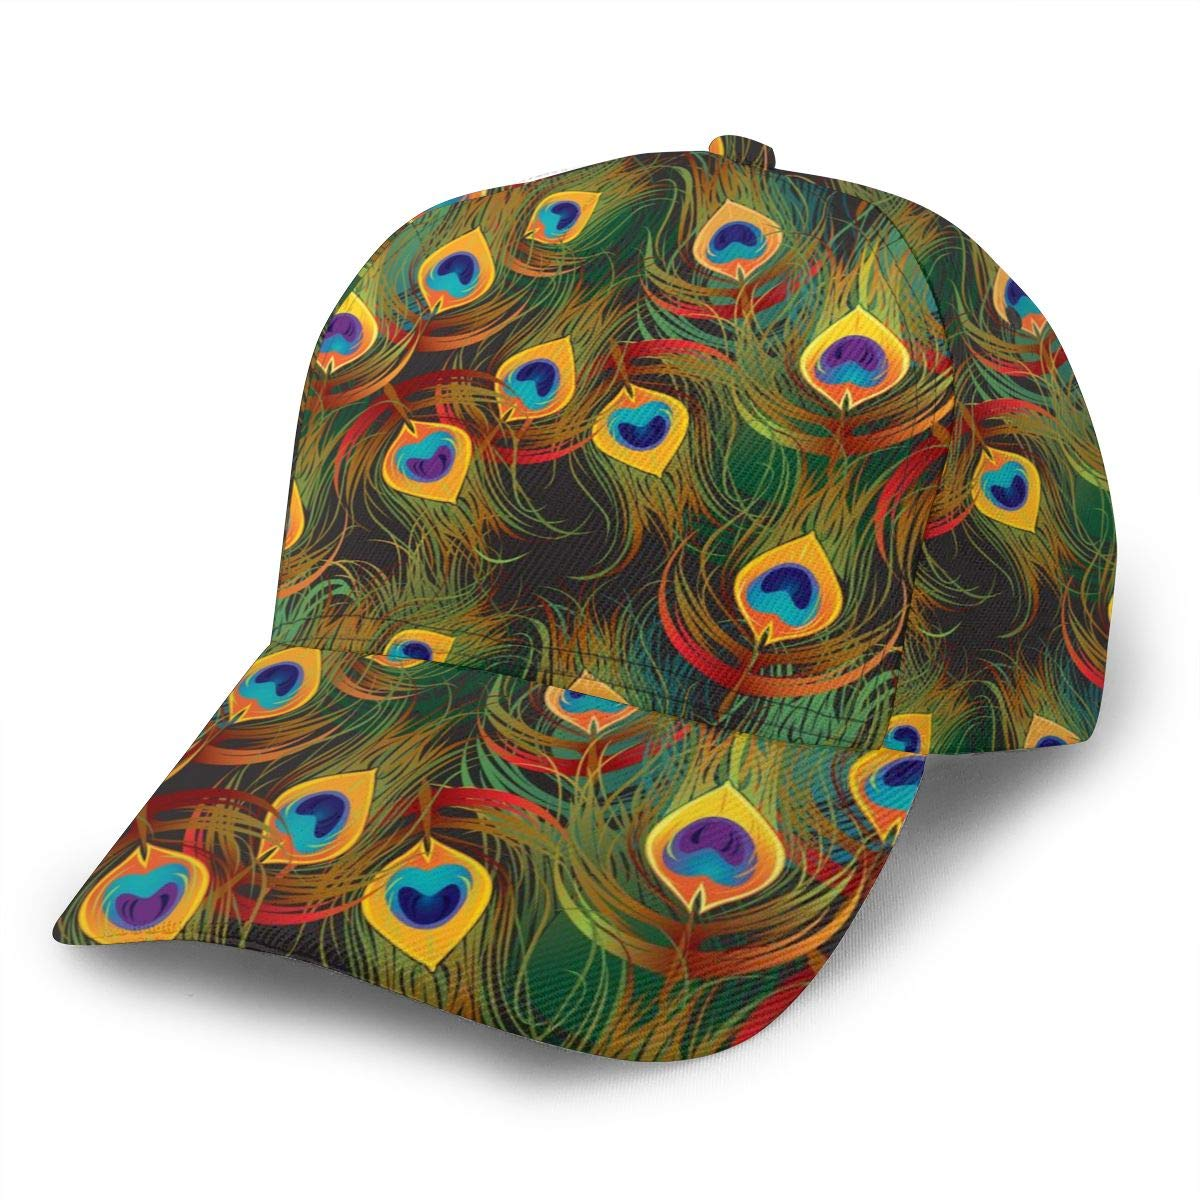 HHTZTCL Peacock Feathers Baseball Cap Adjustable Washed Cotton Dad Hat Hats Black